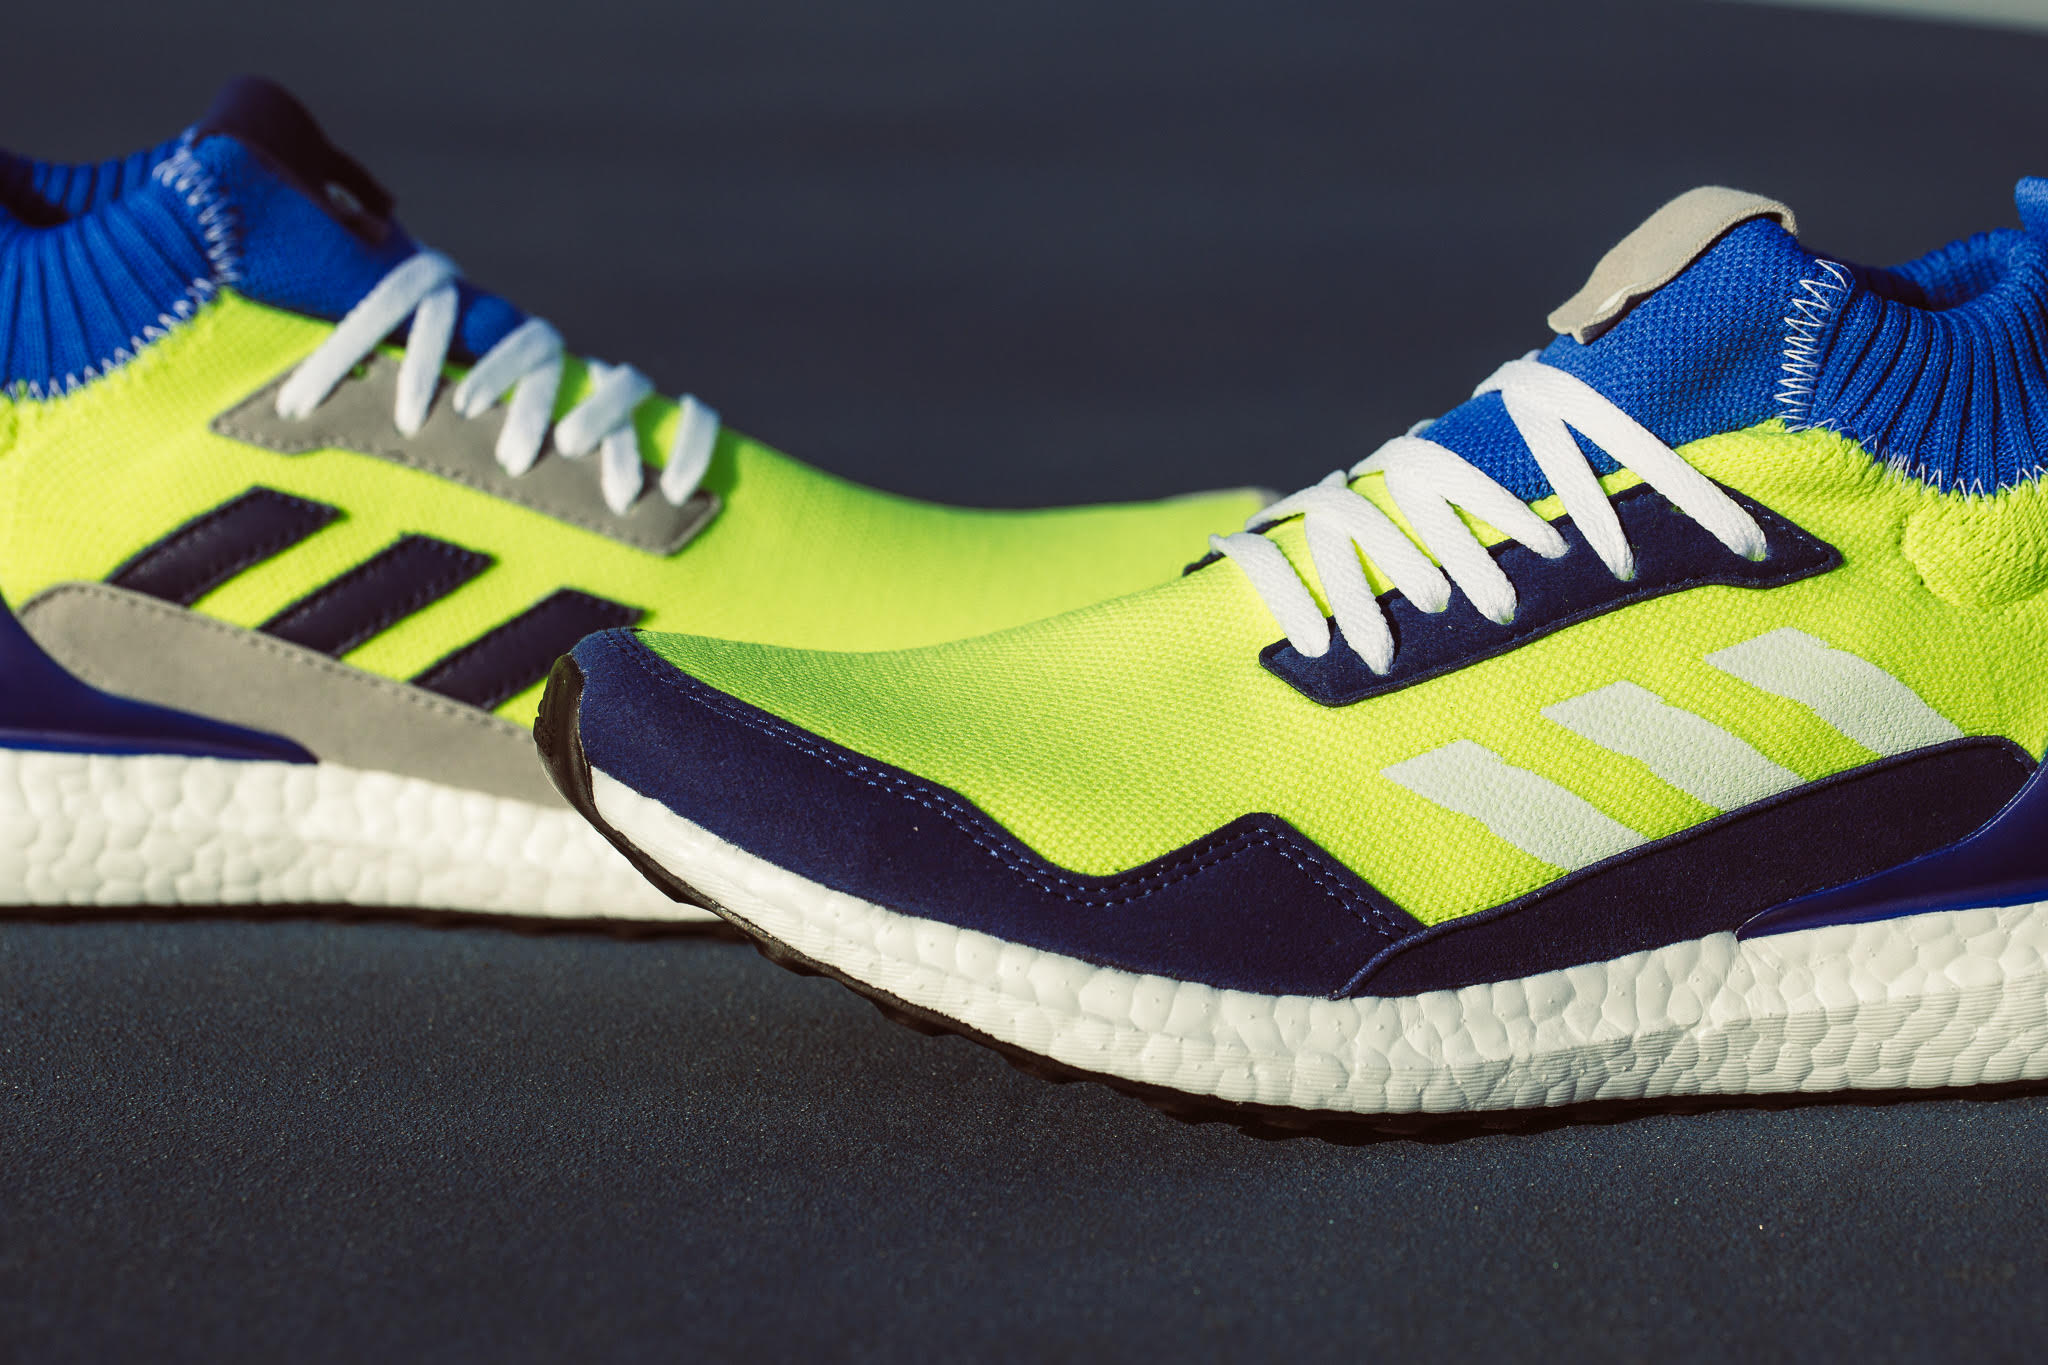 Adidas Consortium Ultra Boost Mid Prototype Release Date BD7399 Forefoot